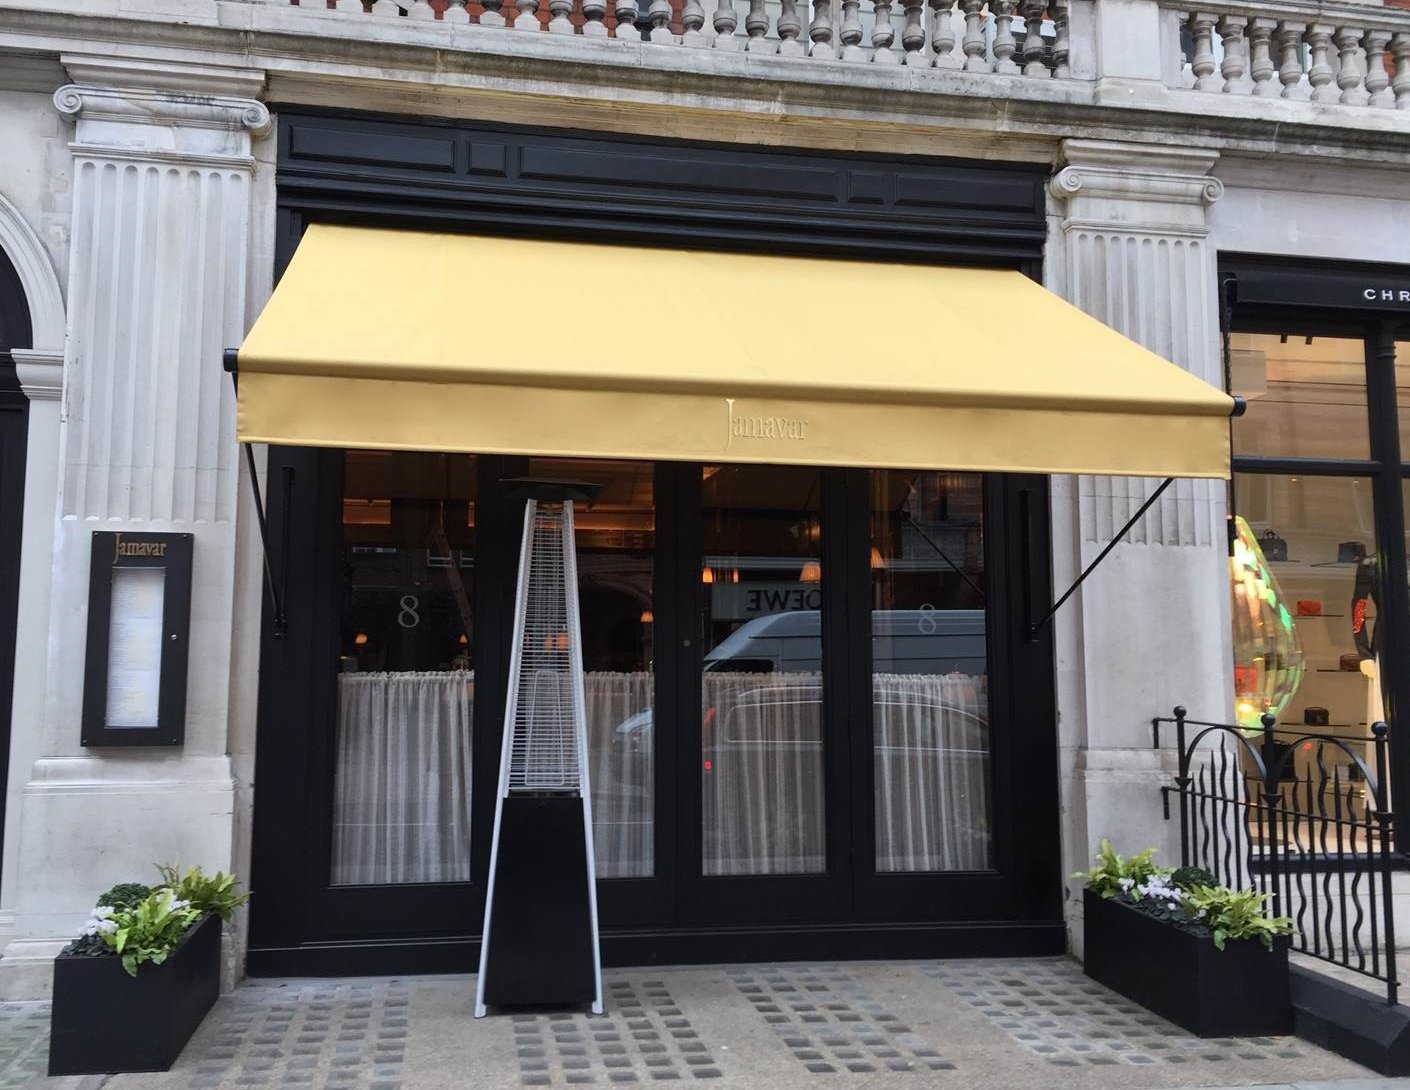 new awning for Jamavar